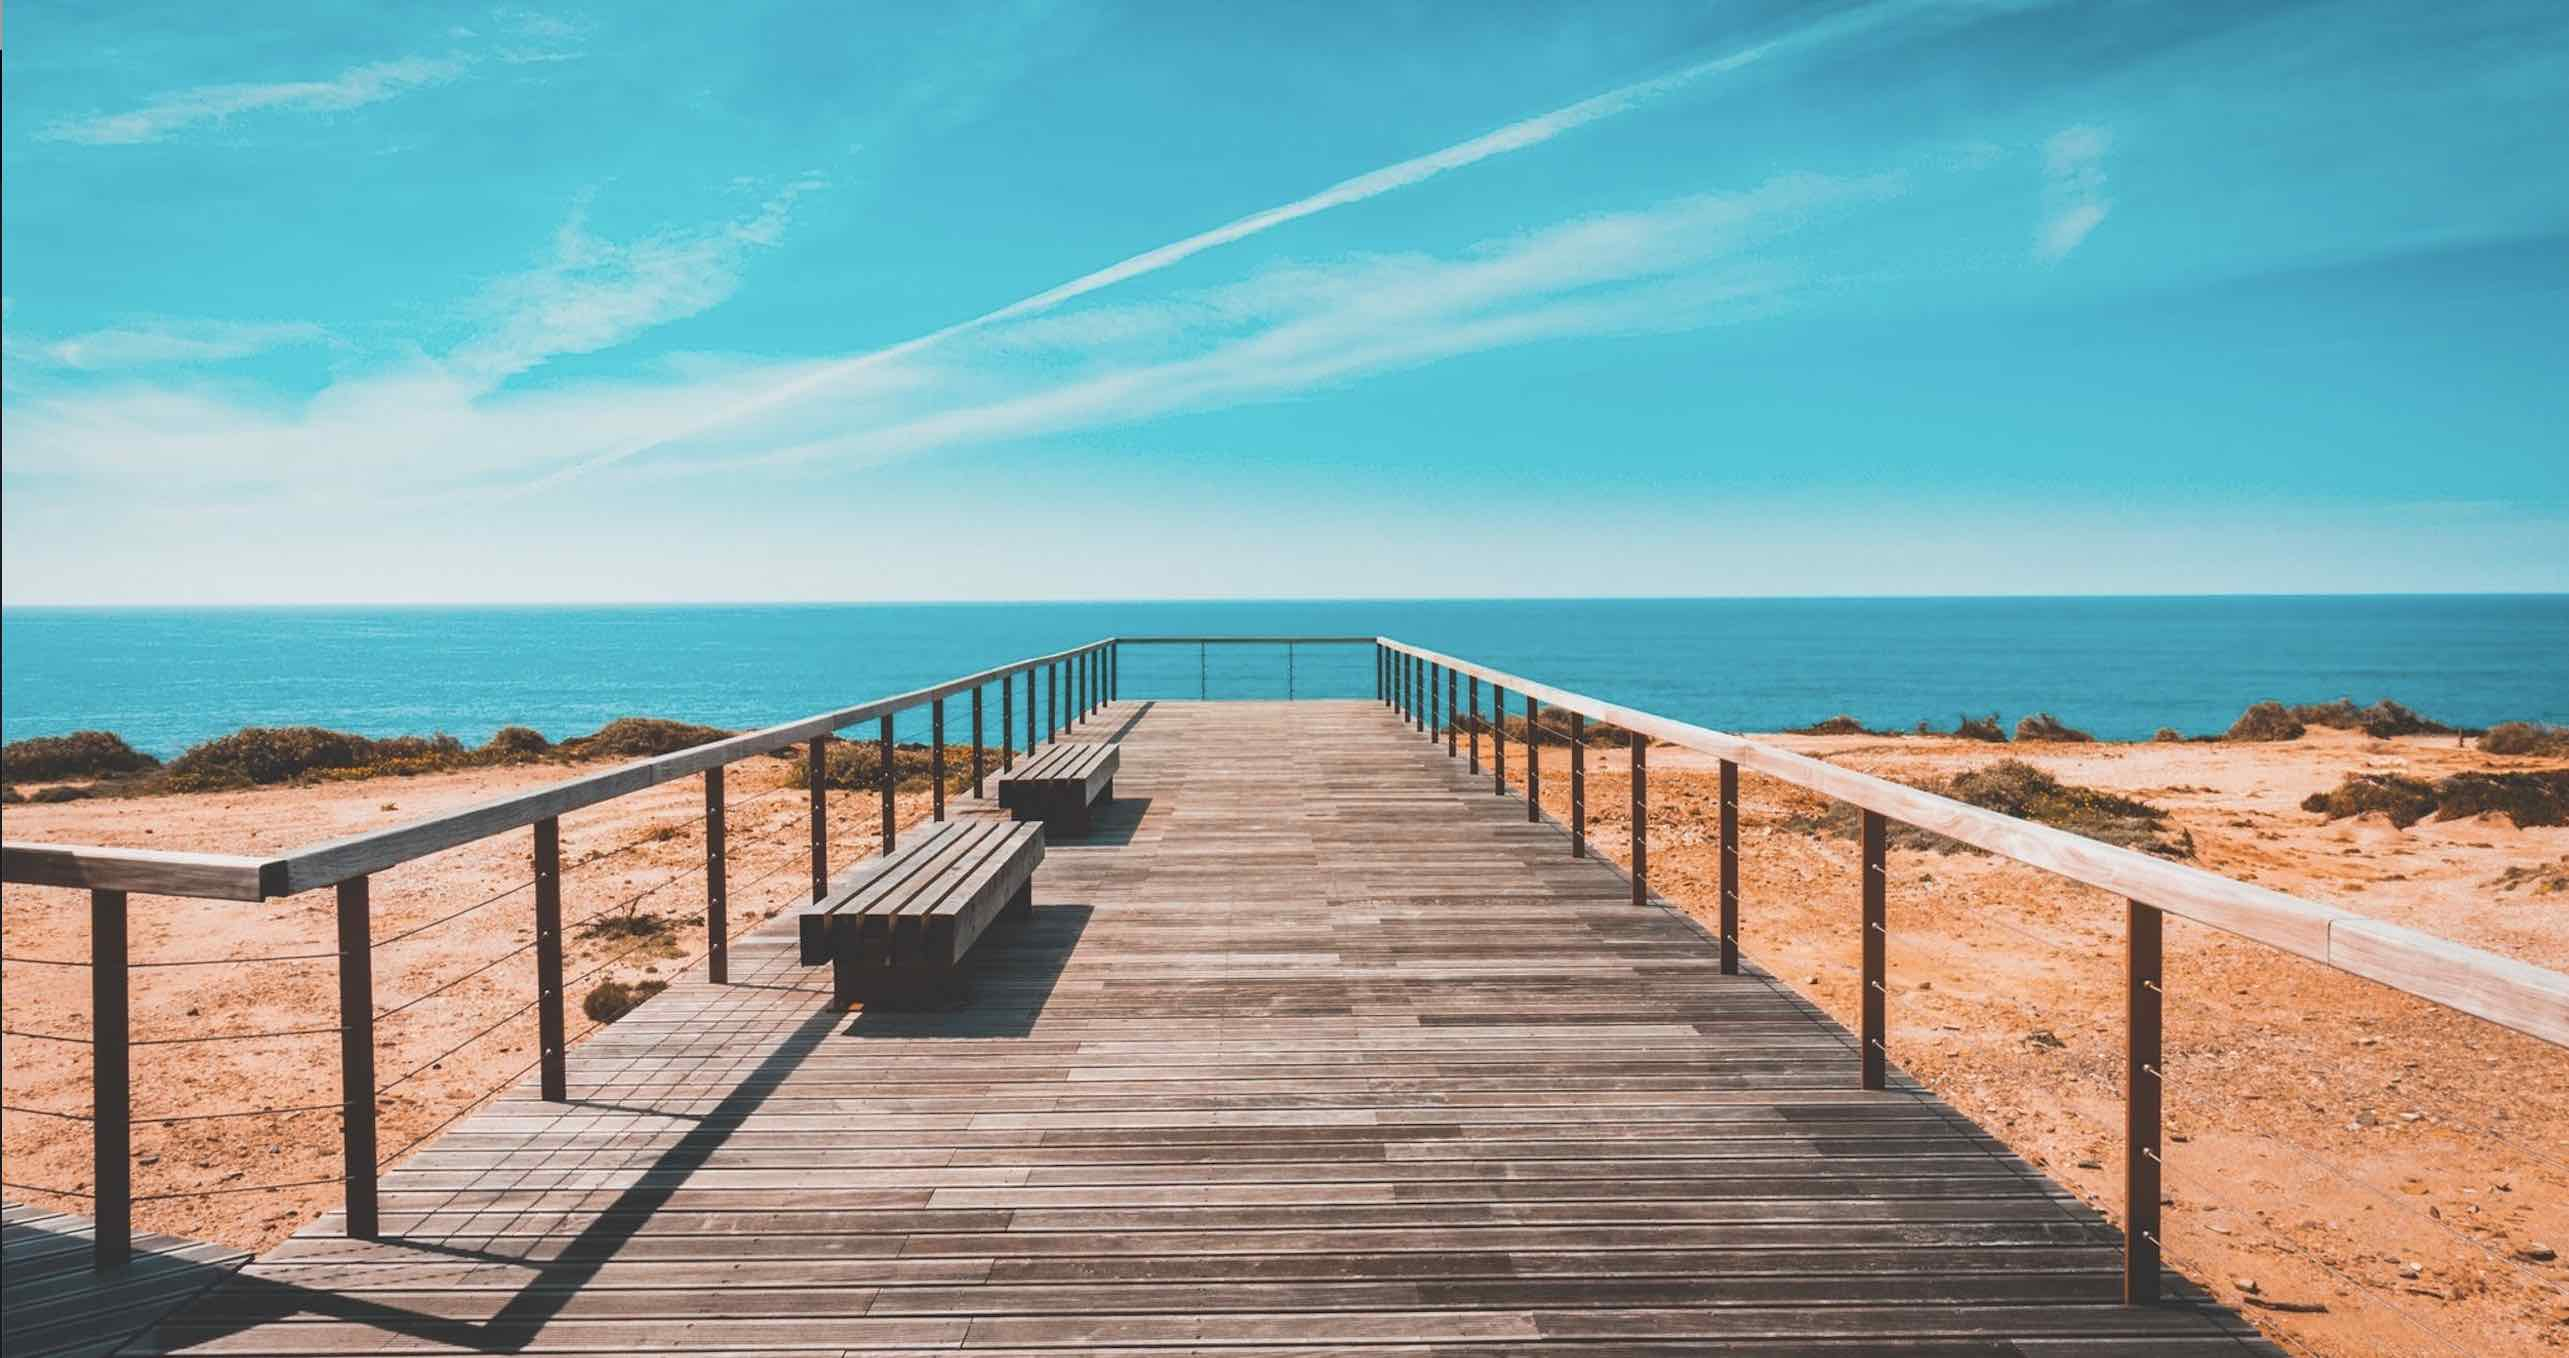 Panoramic beach view with a wooden path leading to golden sand and blue waters and sky